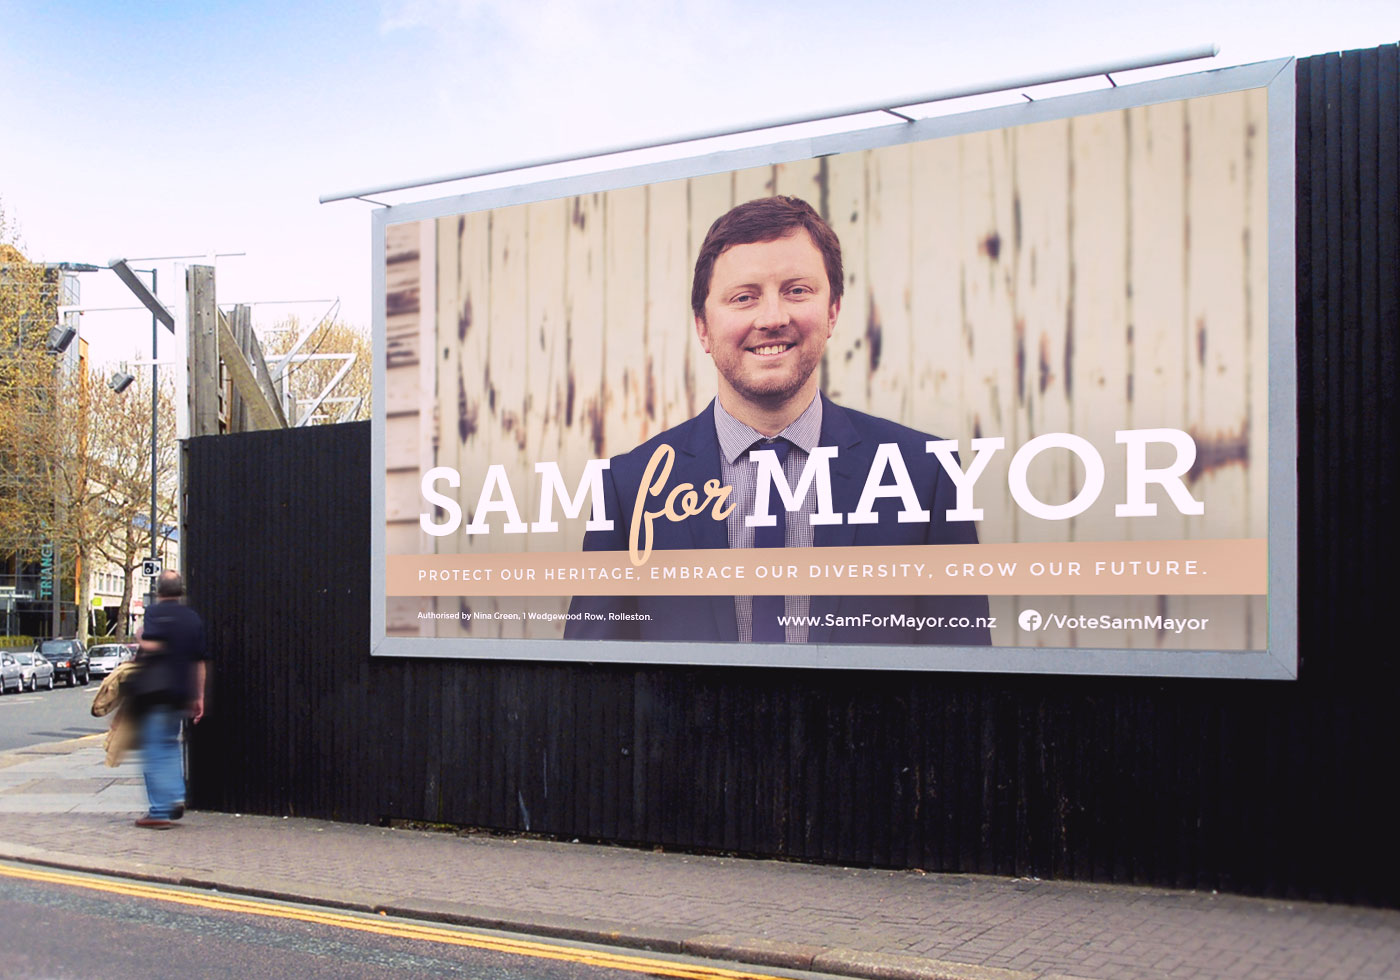 Sam Broughton Mayoral Campaign billboard